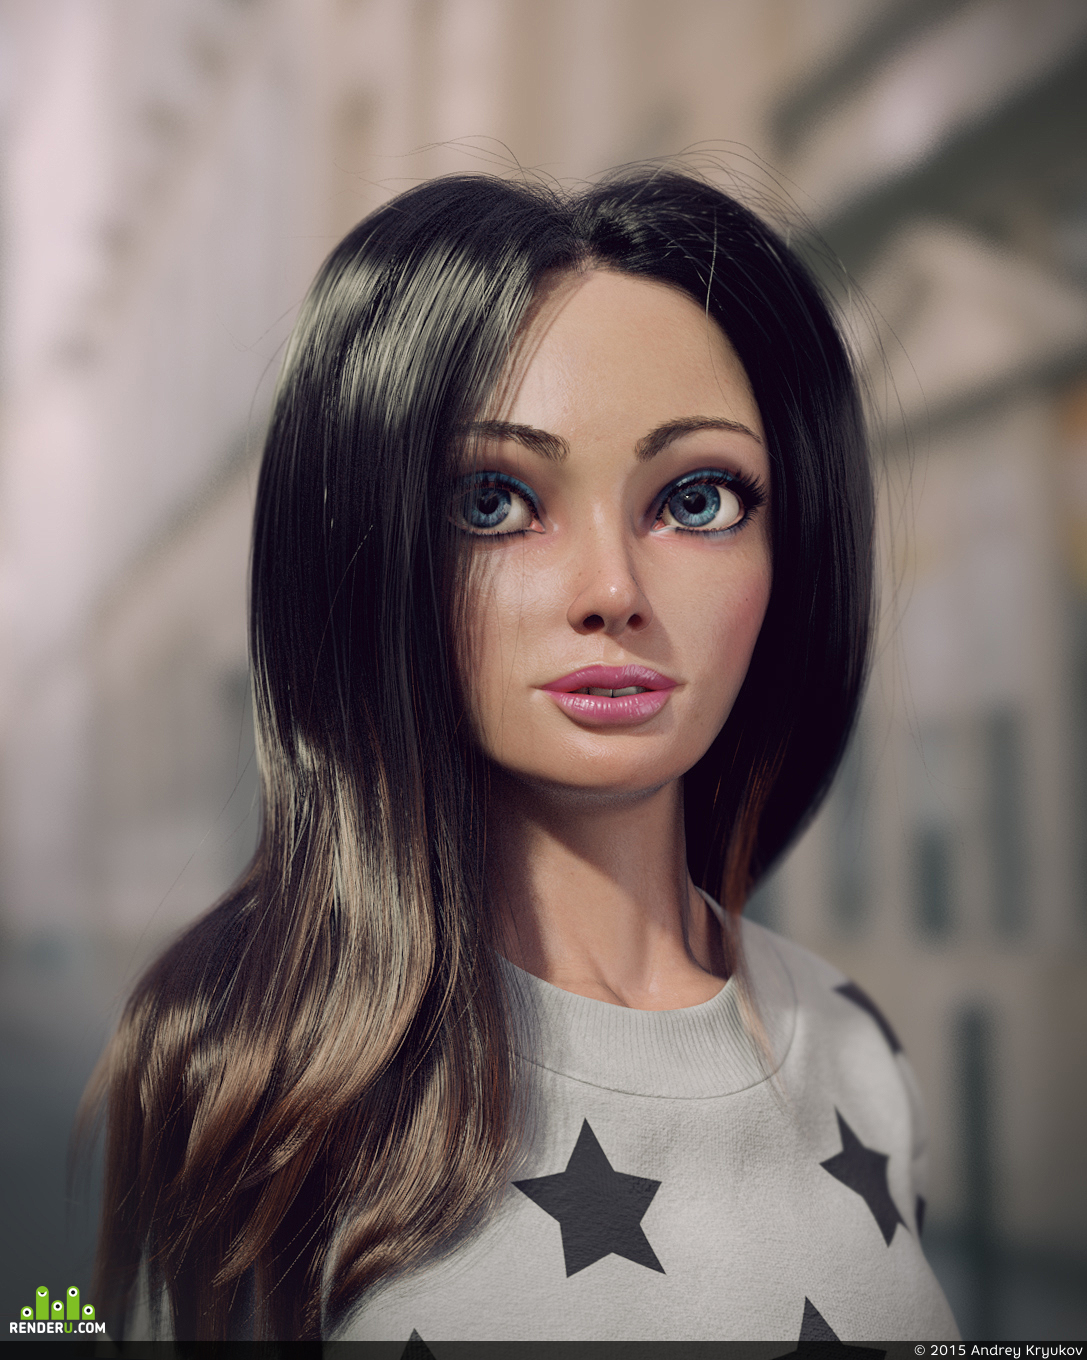 preview Generic girl